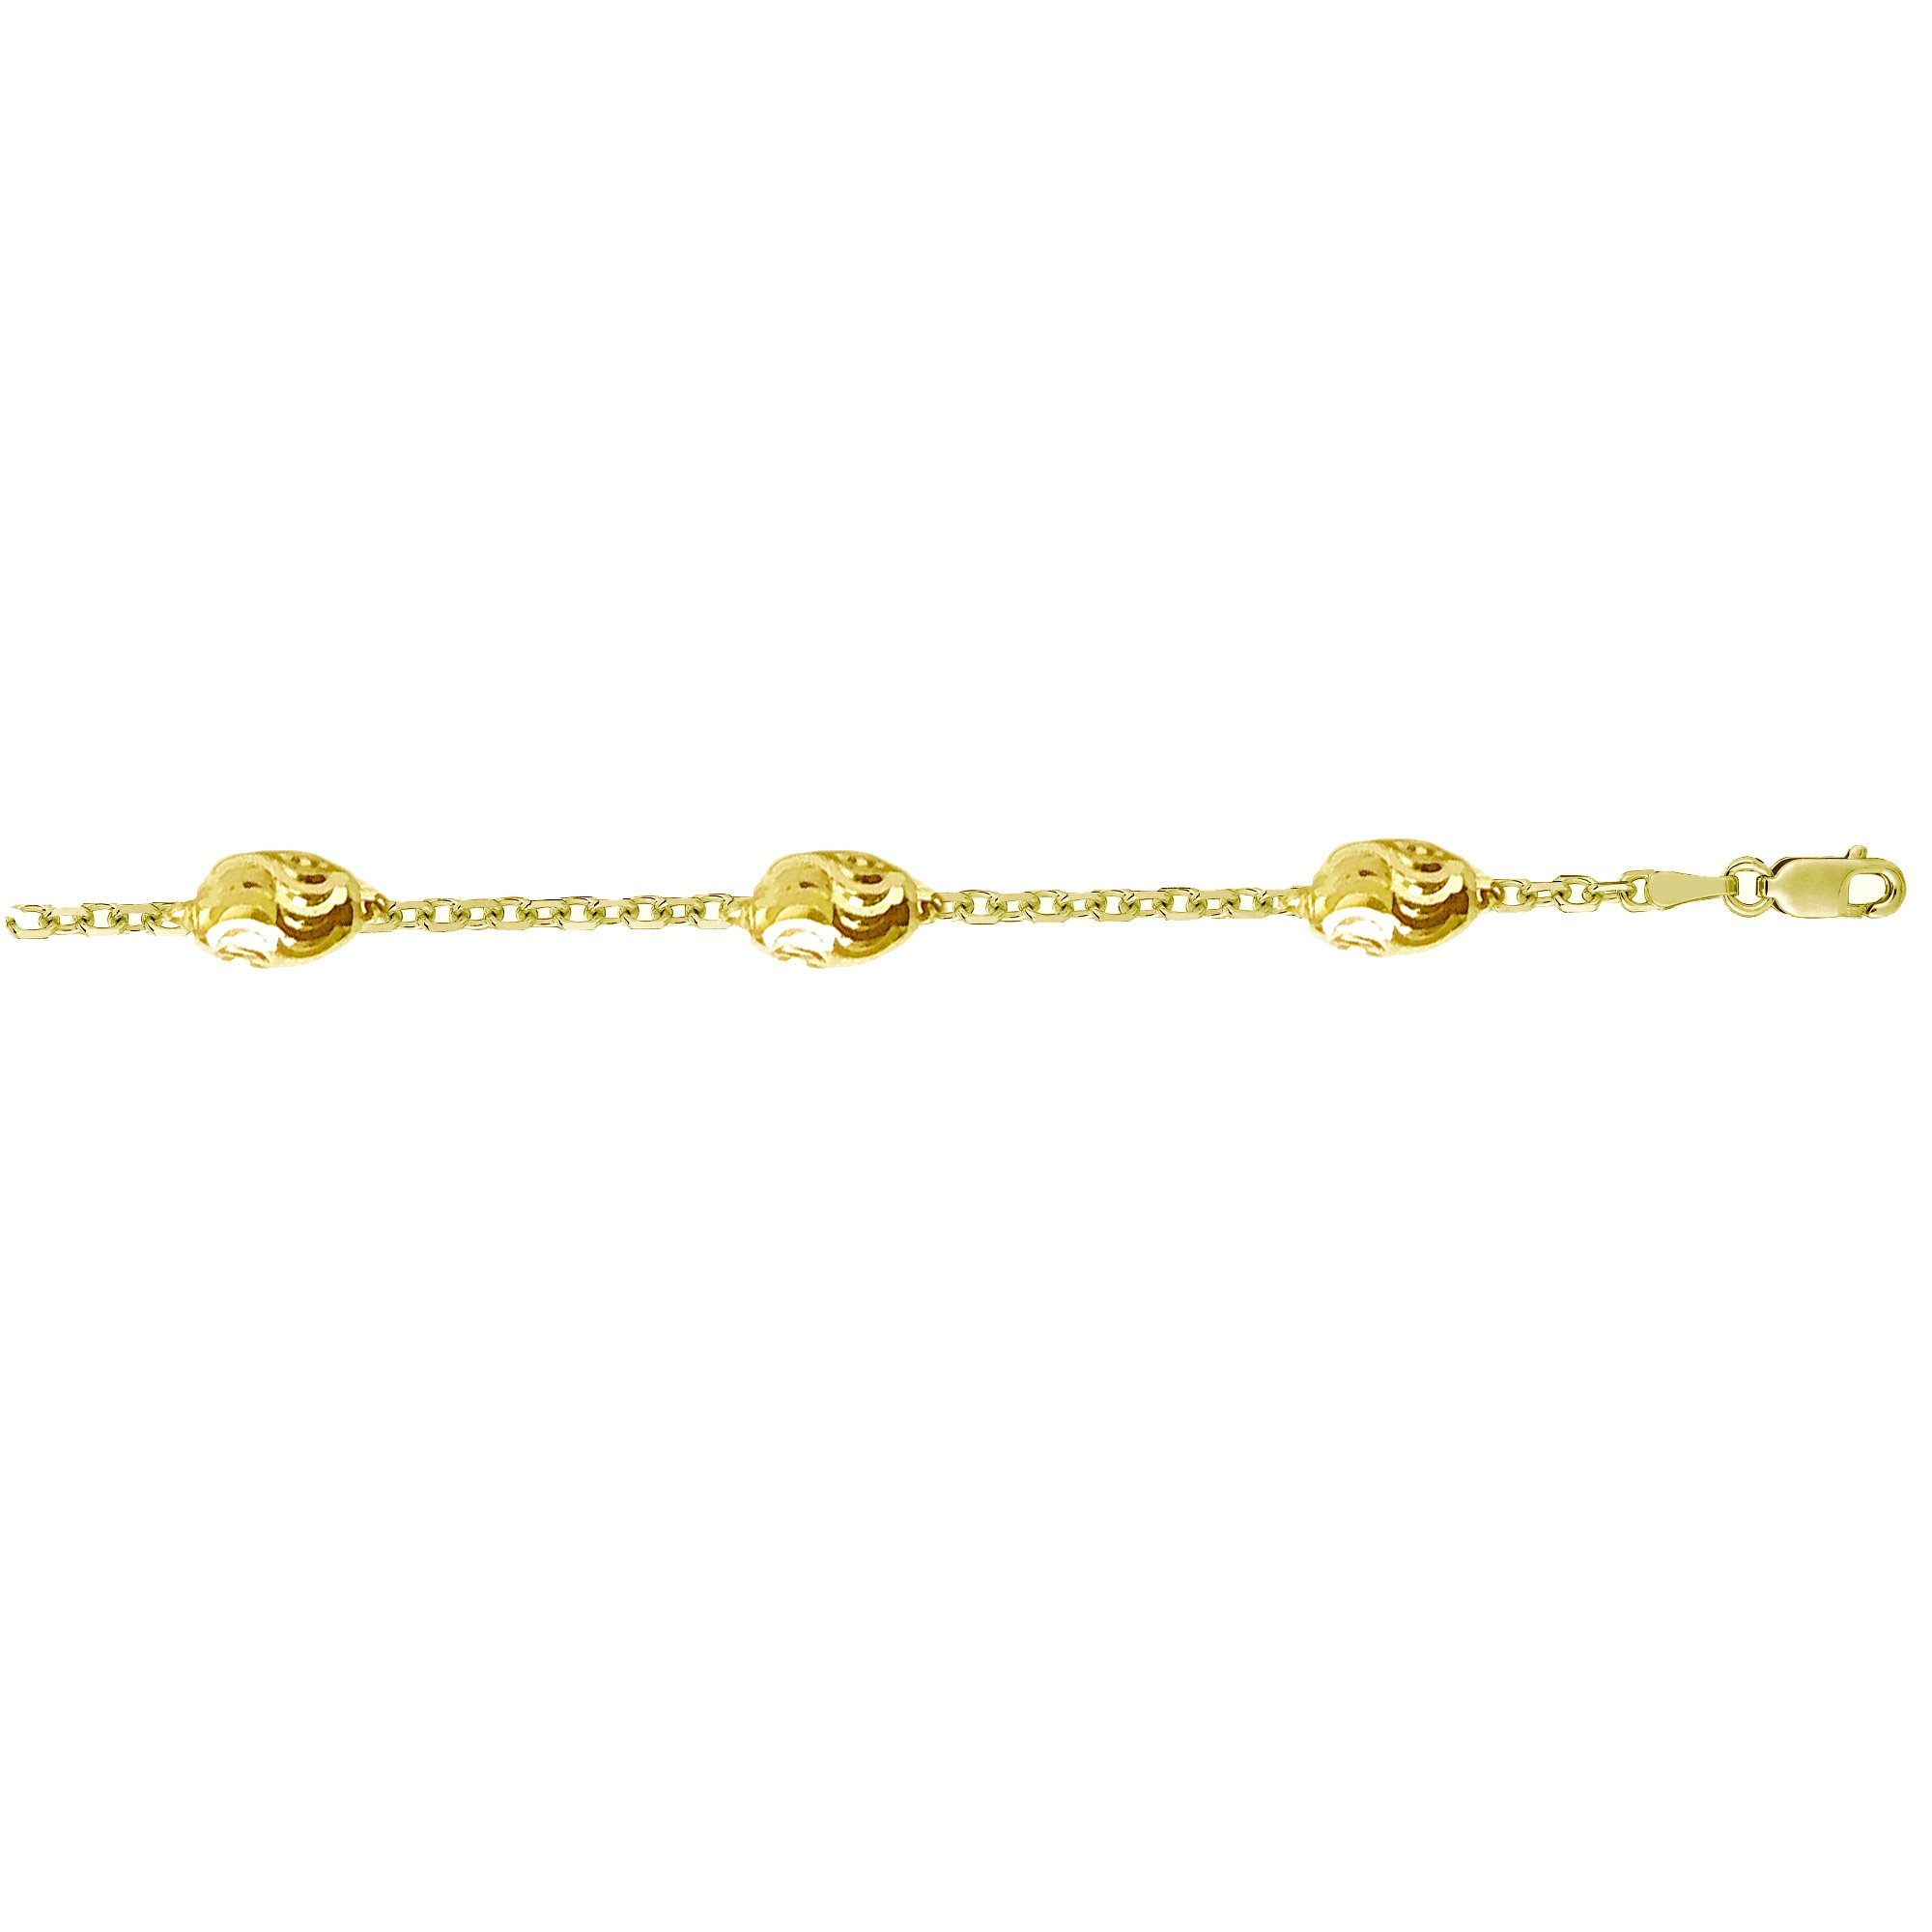 Sterling Silver or Gold-Tone Faceted Oval Barrel Bead Station Anklet by Ritastephens (Image #2)